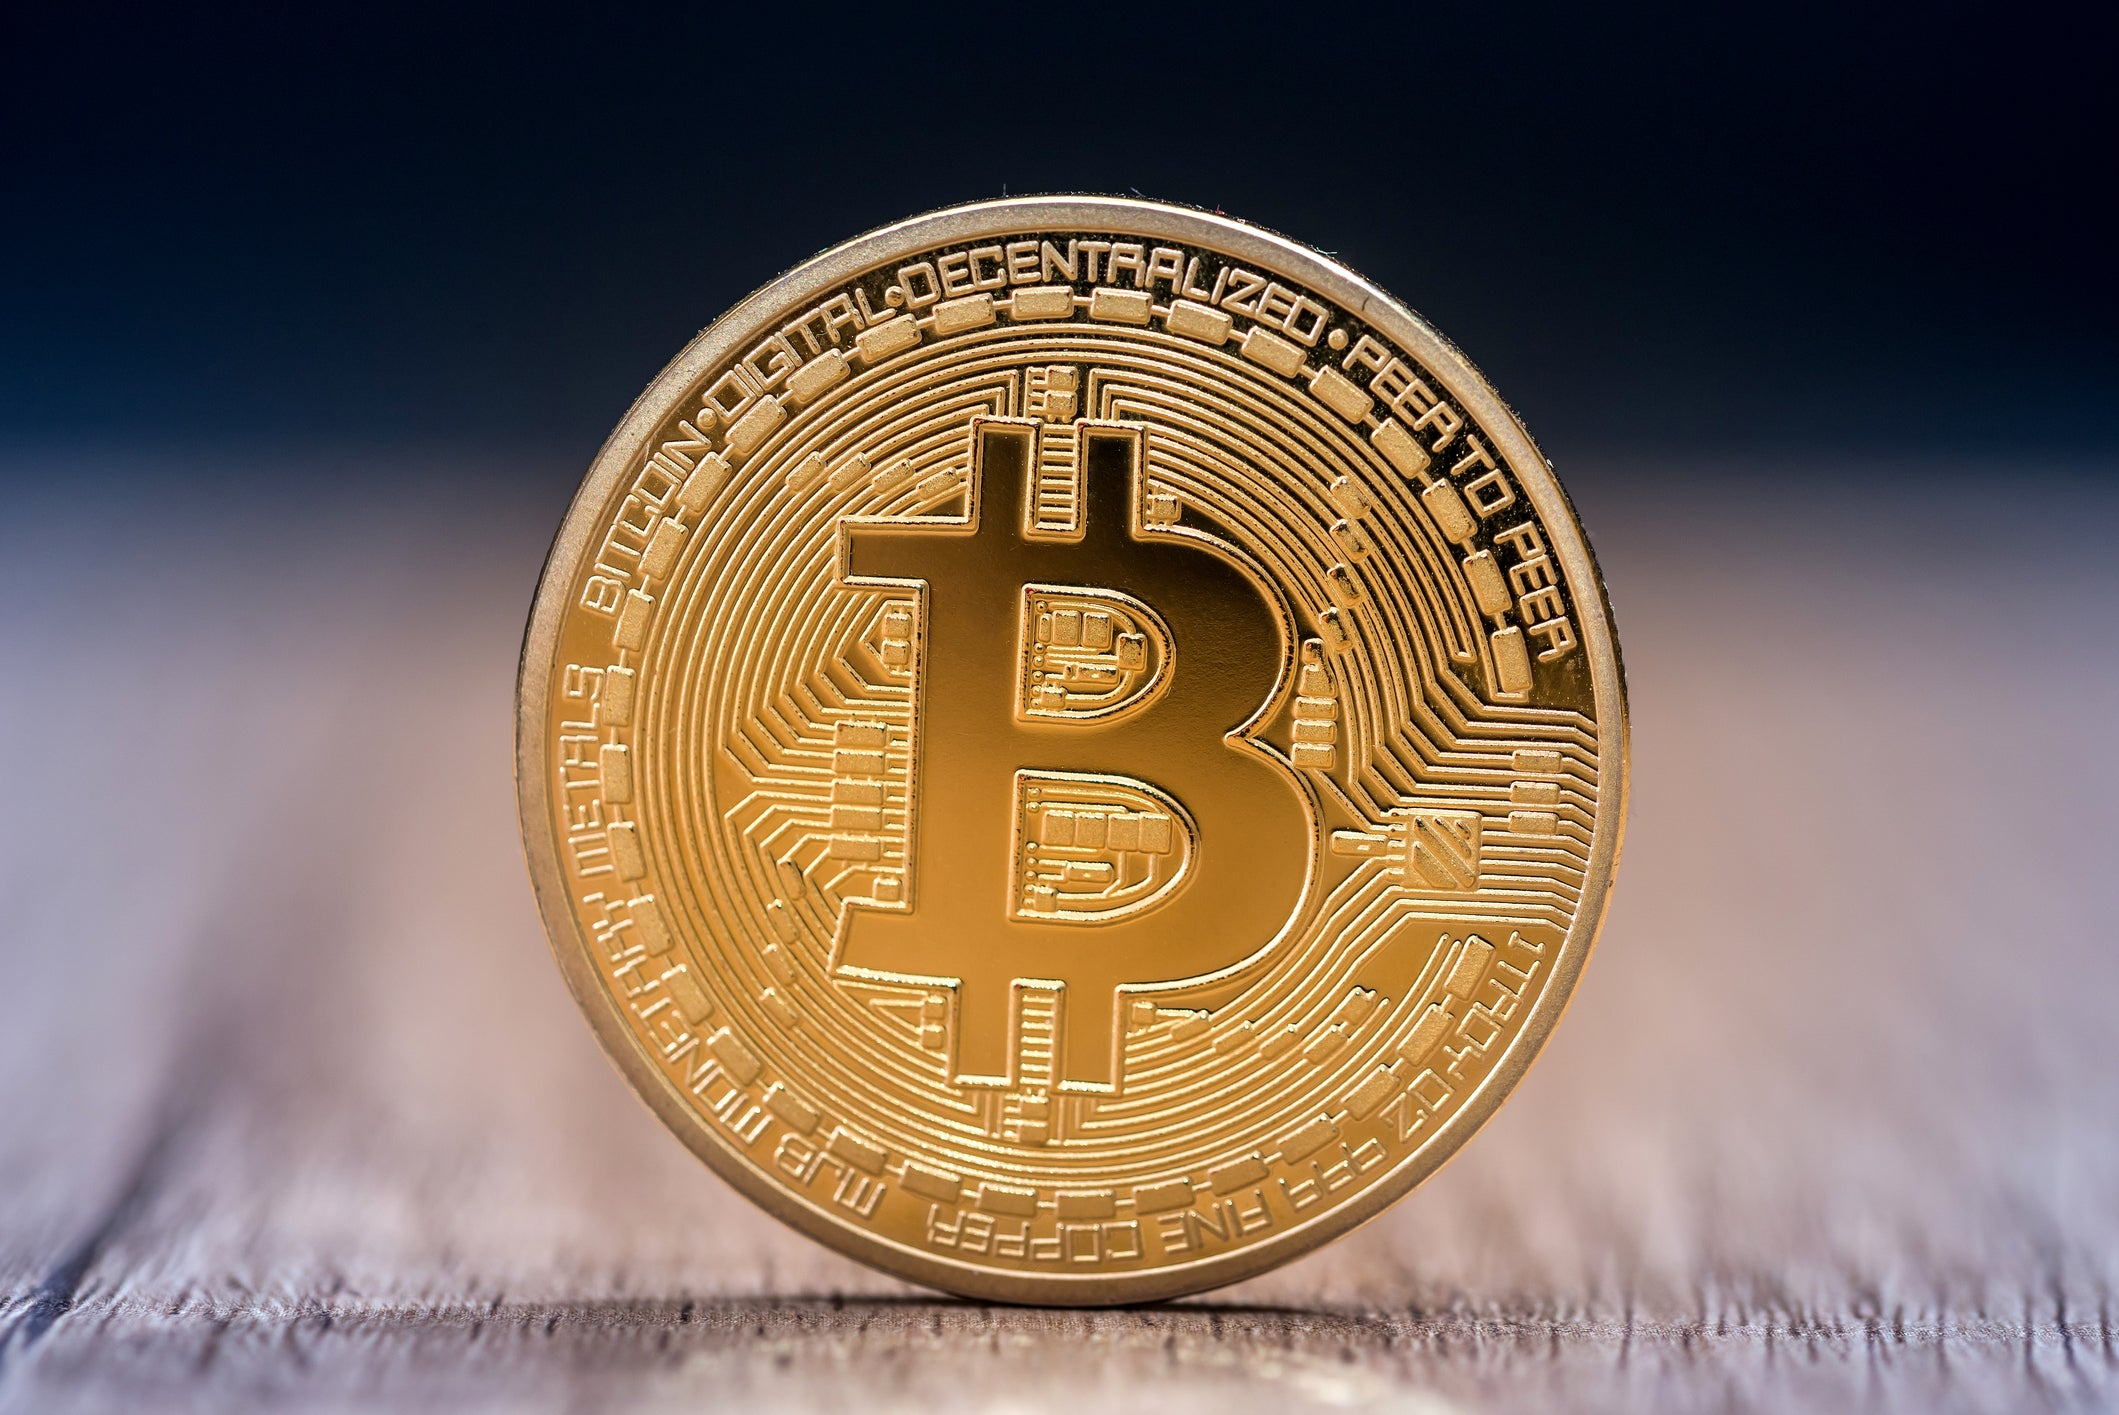 Forget Bitcoin: 3 Hypergrowth Stocks I'd Rather Buy